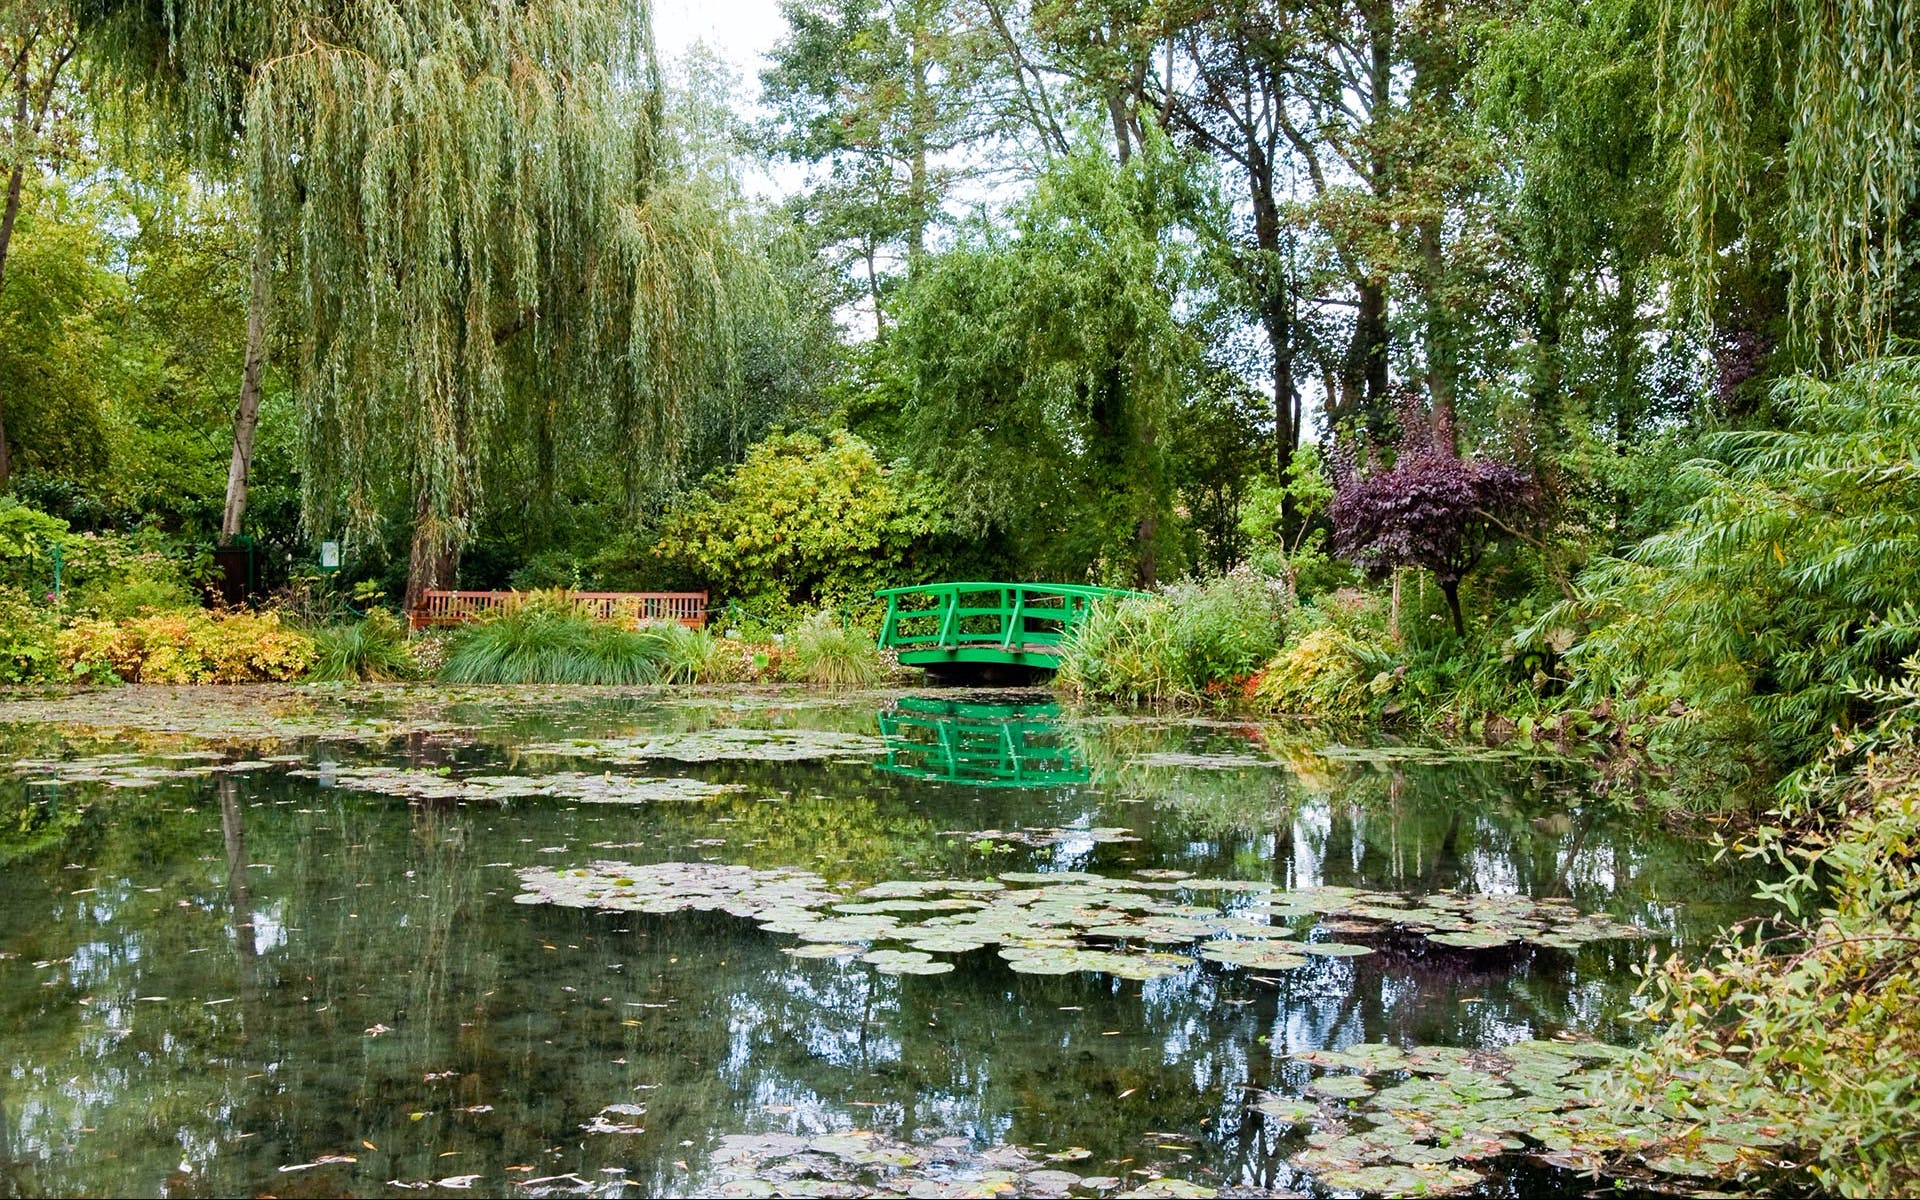 full day excursion to giverny & versailles guided tour with lunch and transfers -1